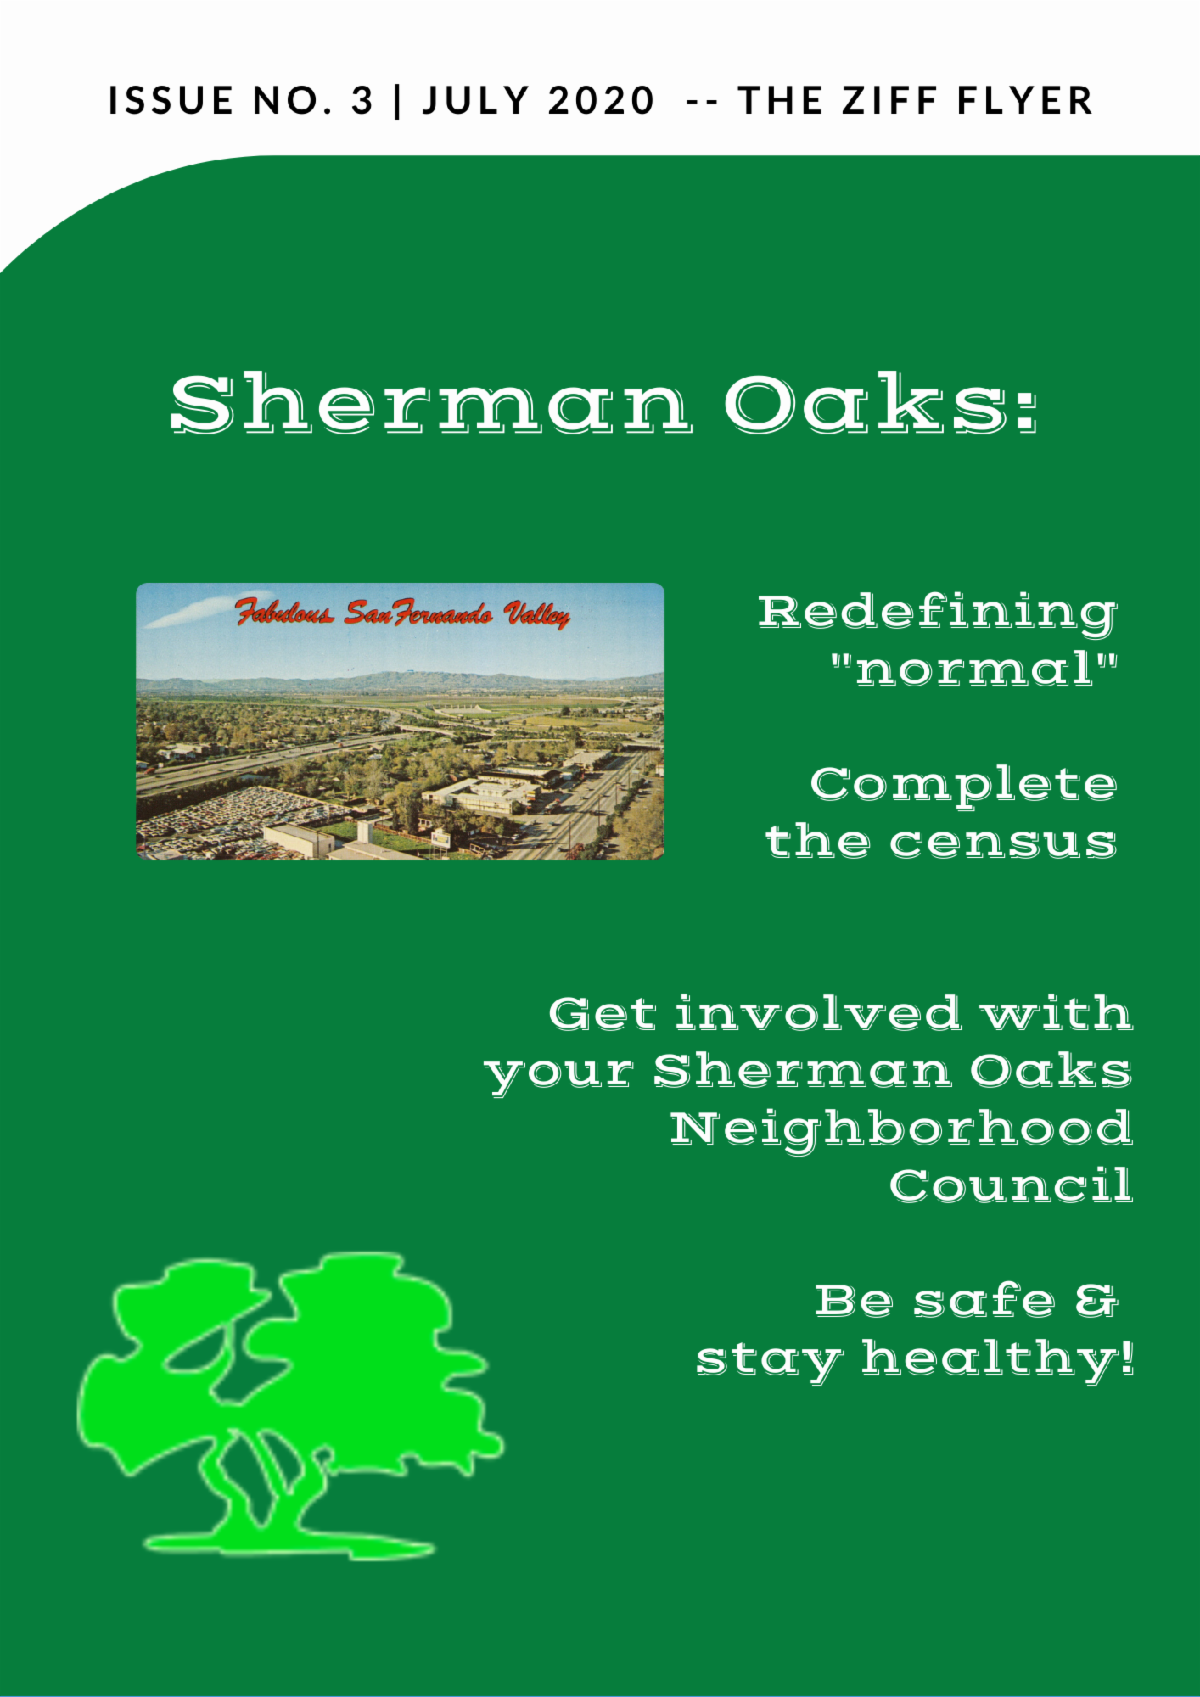 The Ziff Flyer. Redefining normal. Complete the census. Get involved with your Sherman Oaks Neighborhood Council. Be safe and healthy.